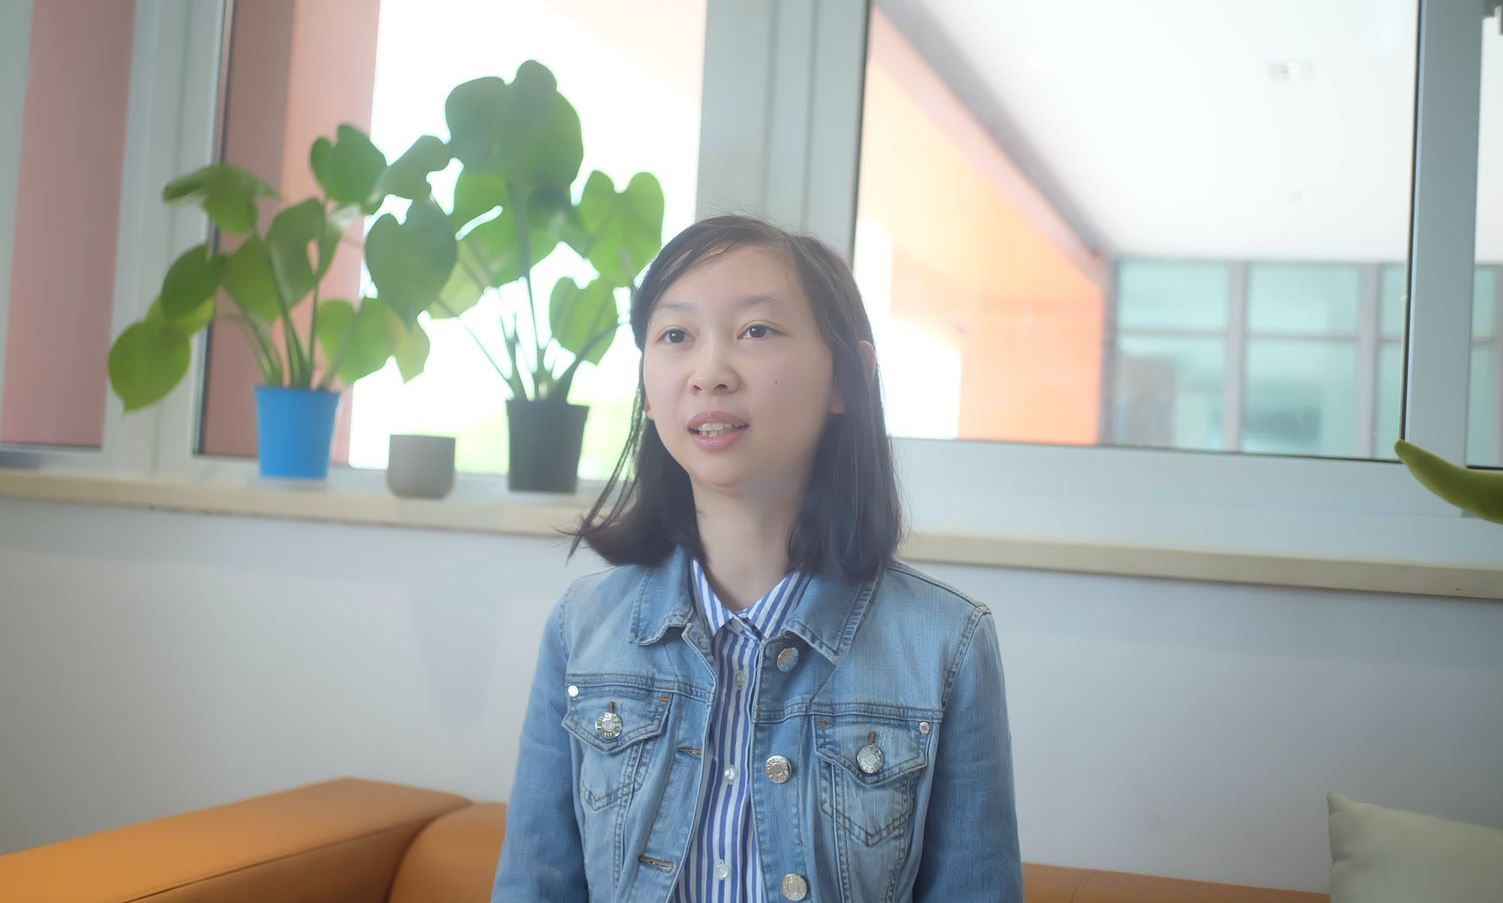 Ningbo student empowered by science